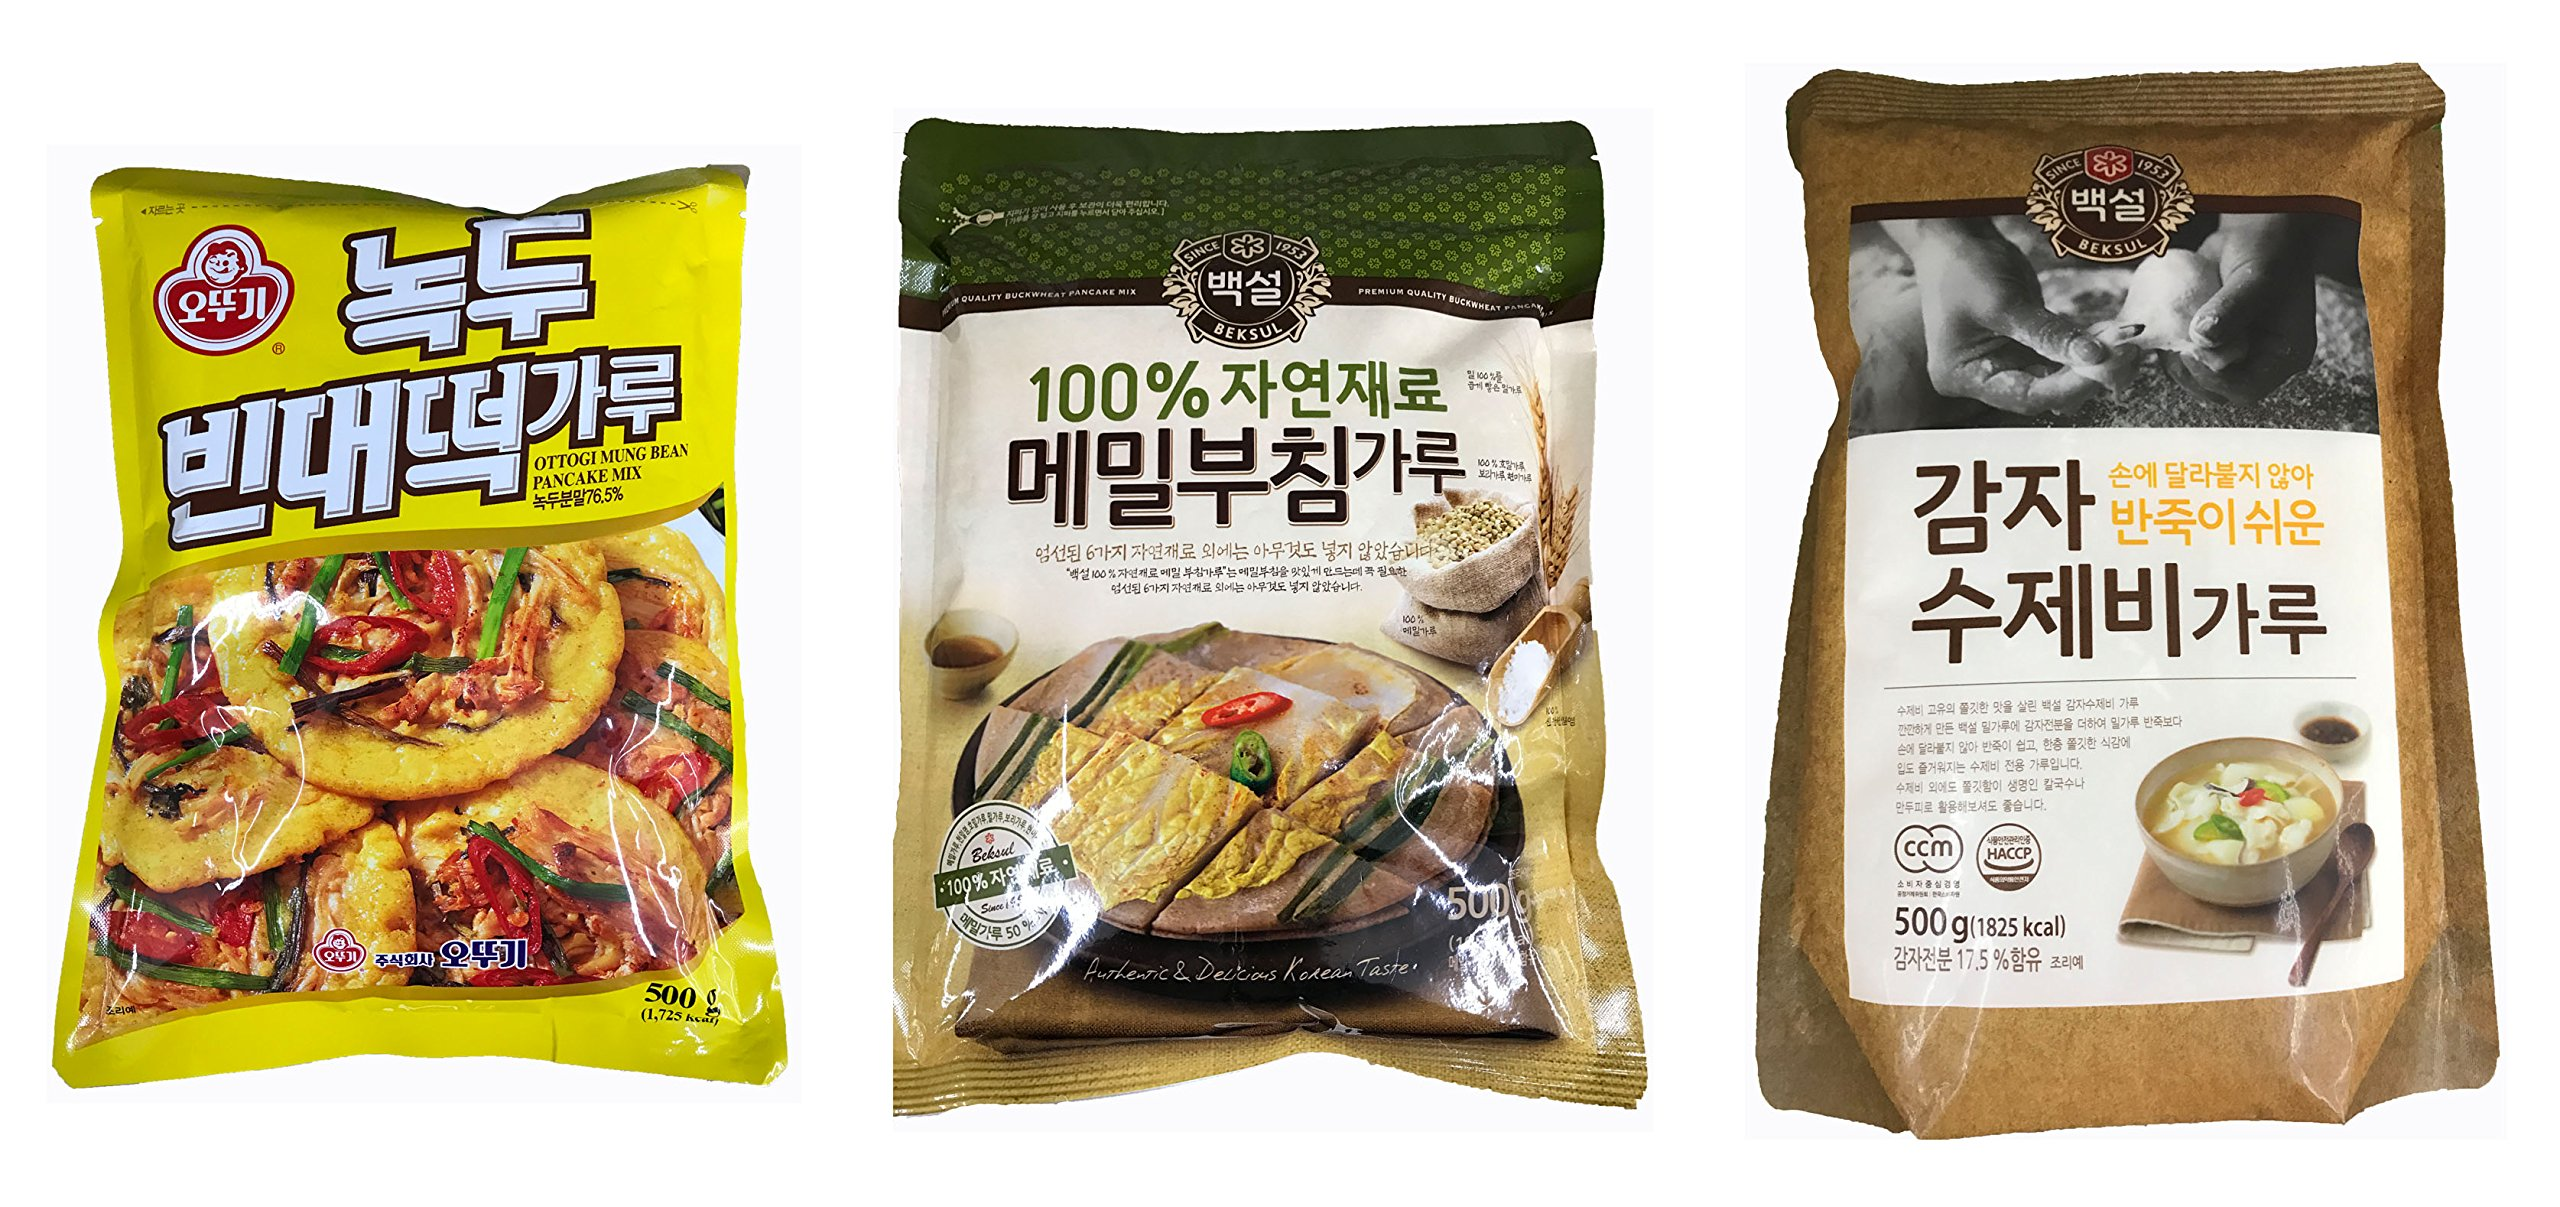 Korean Natural Pancake Flour Mix; Mung Bean(Nokdu) 500g + Buckwheat(Memil) Pancakes Mix 500g(1.1 pounds) + Potato Starch Flour Mix(500g)